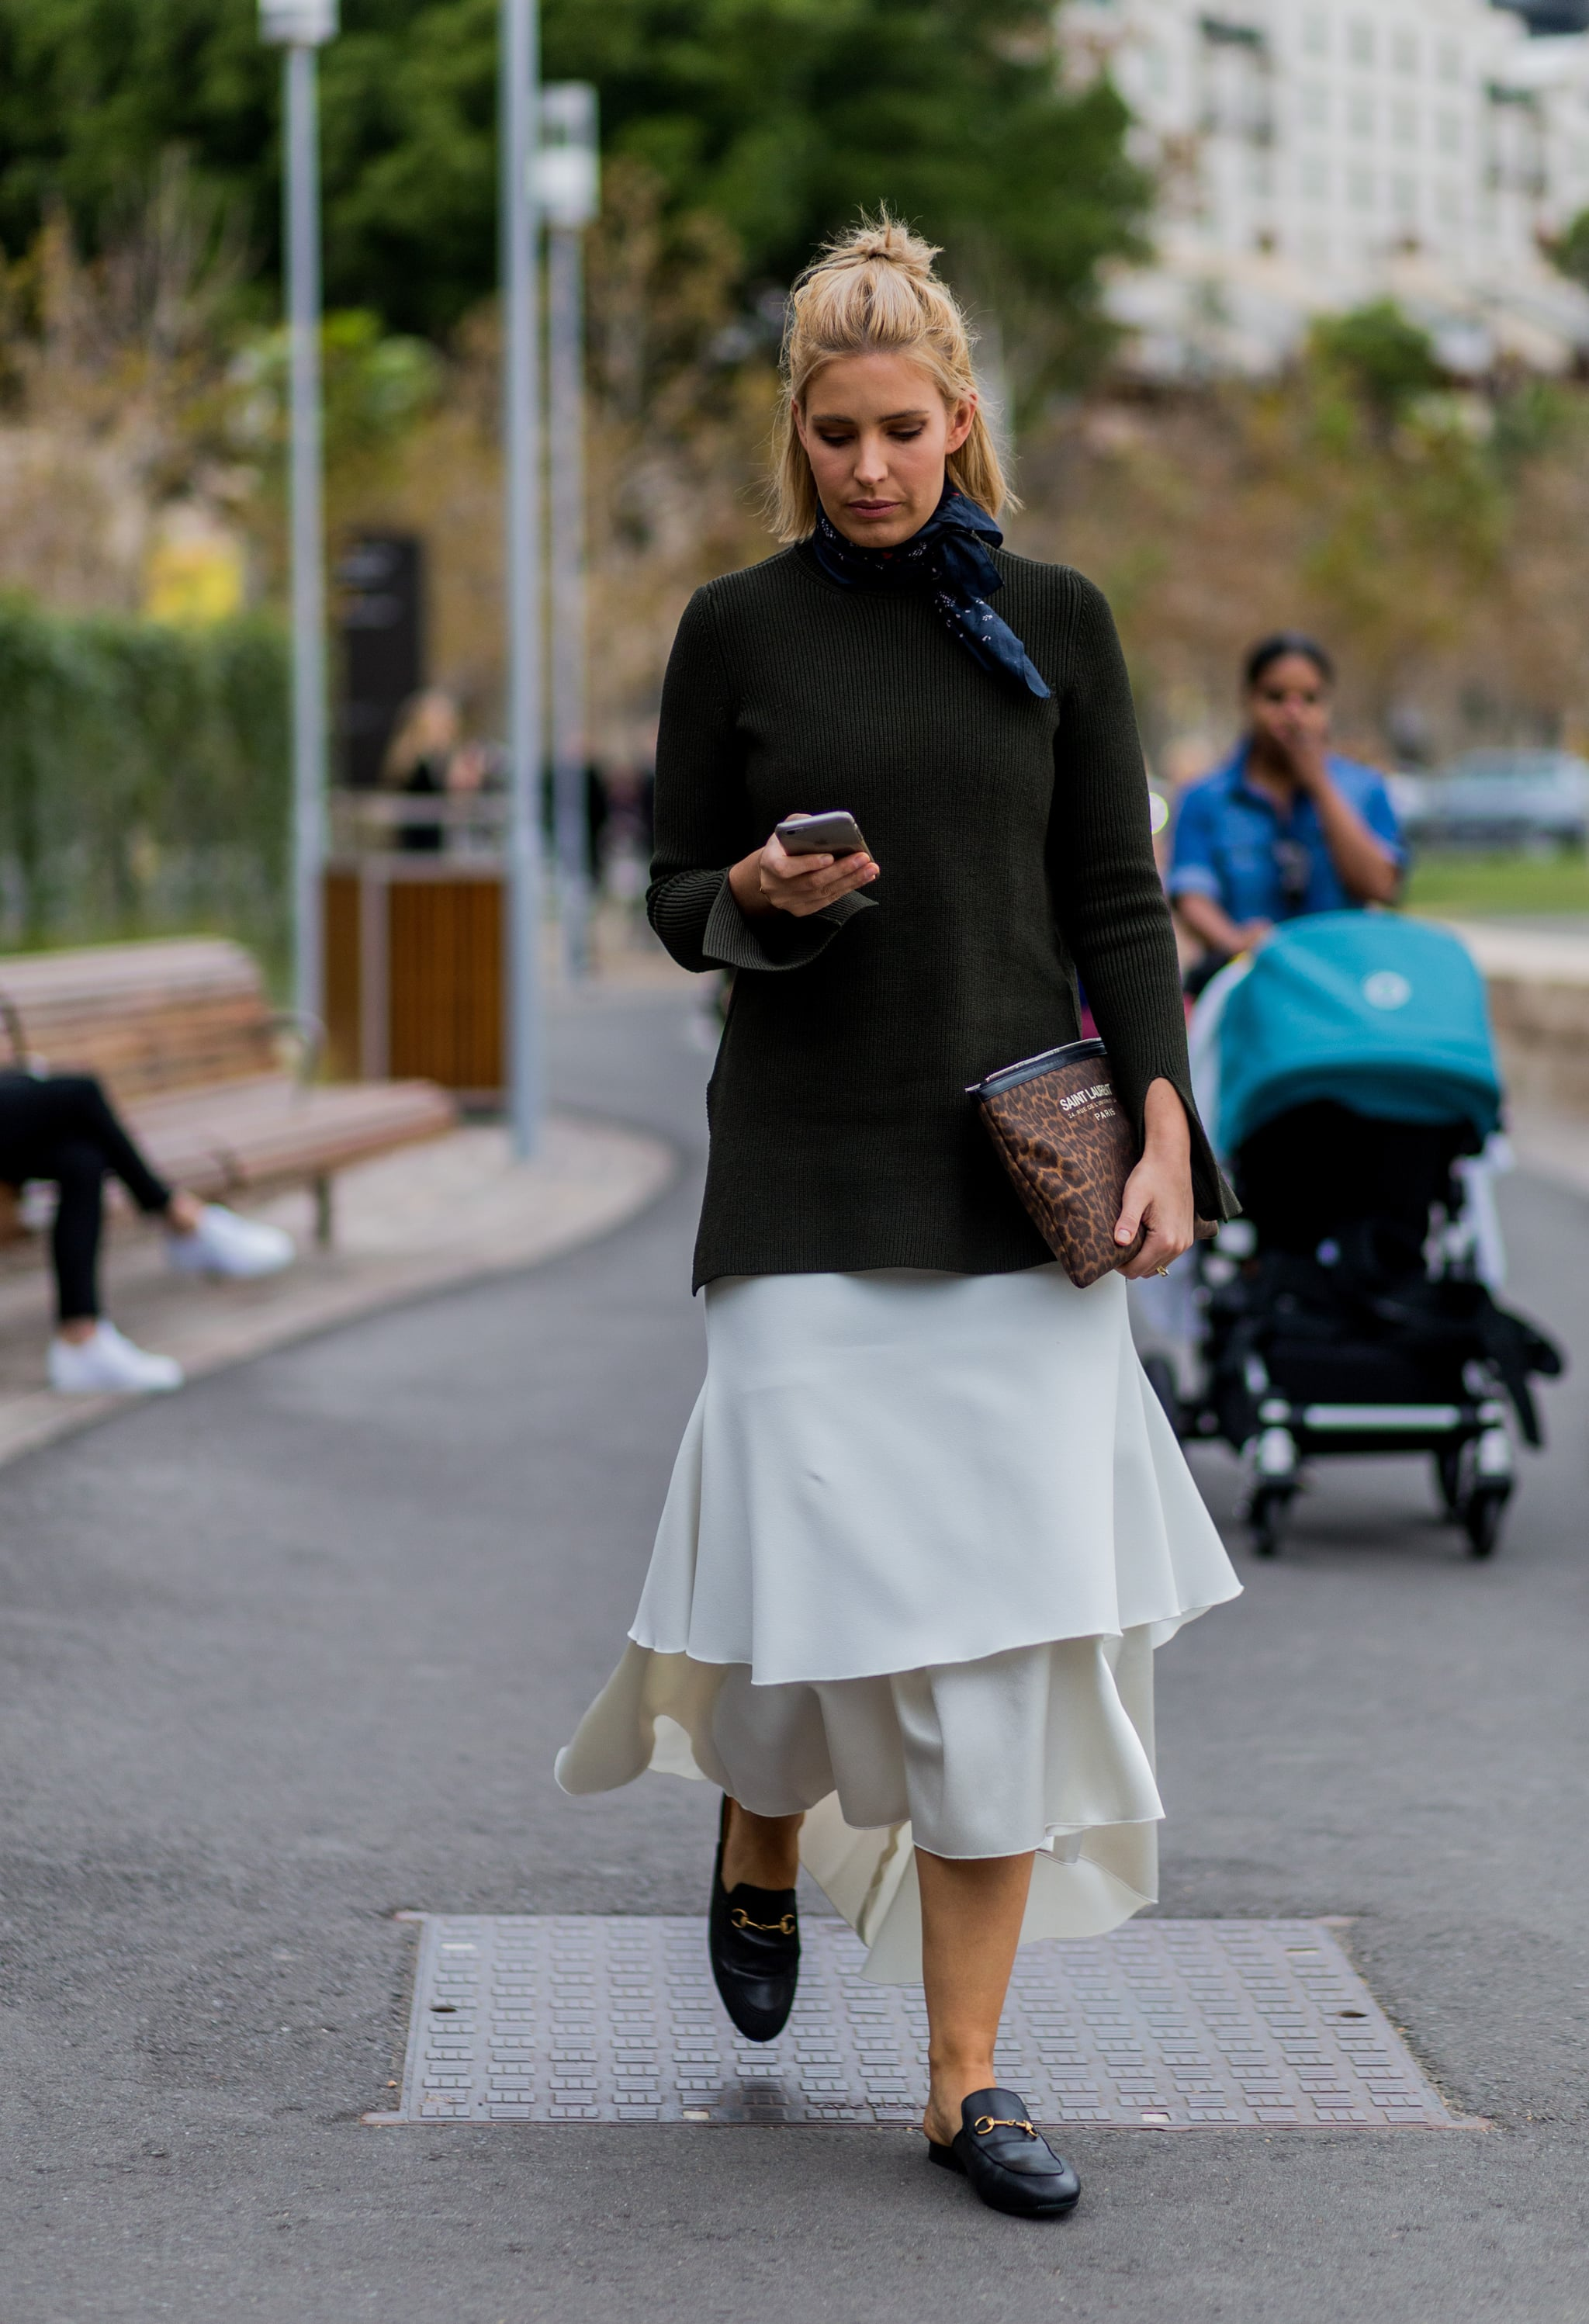 And Incredibly Stylish With a Midi Dress and Black Sweater